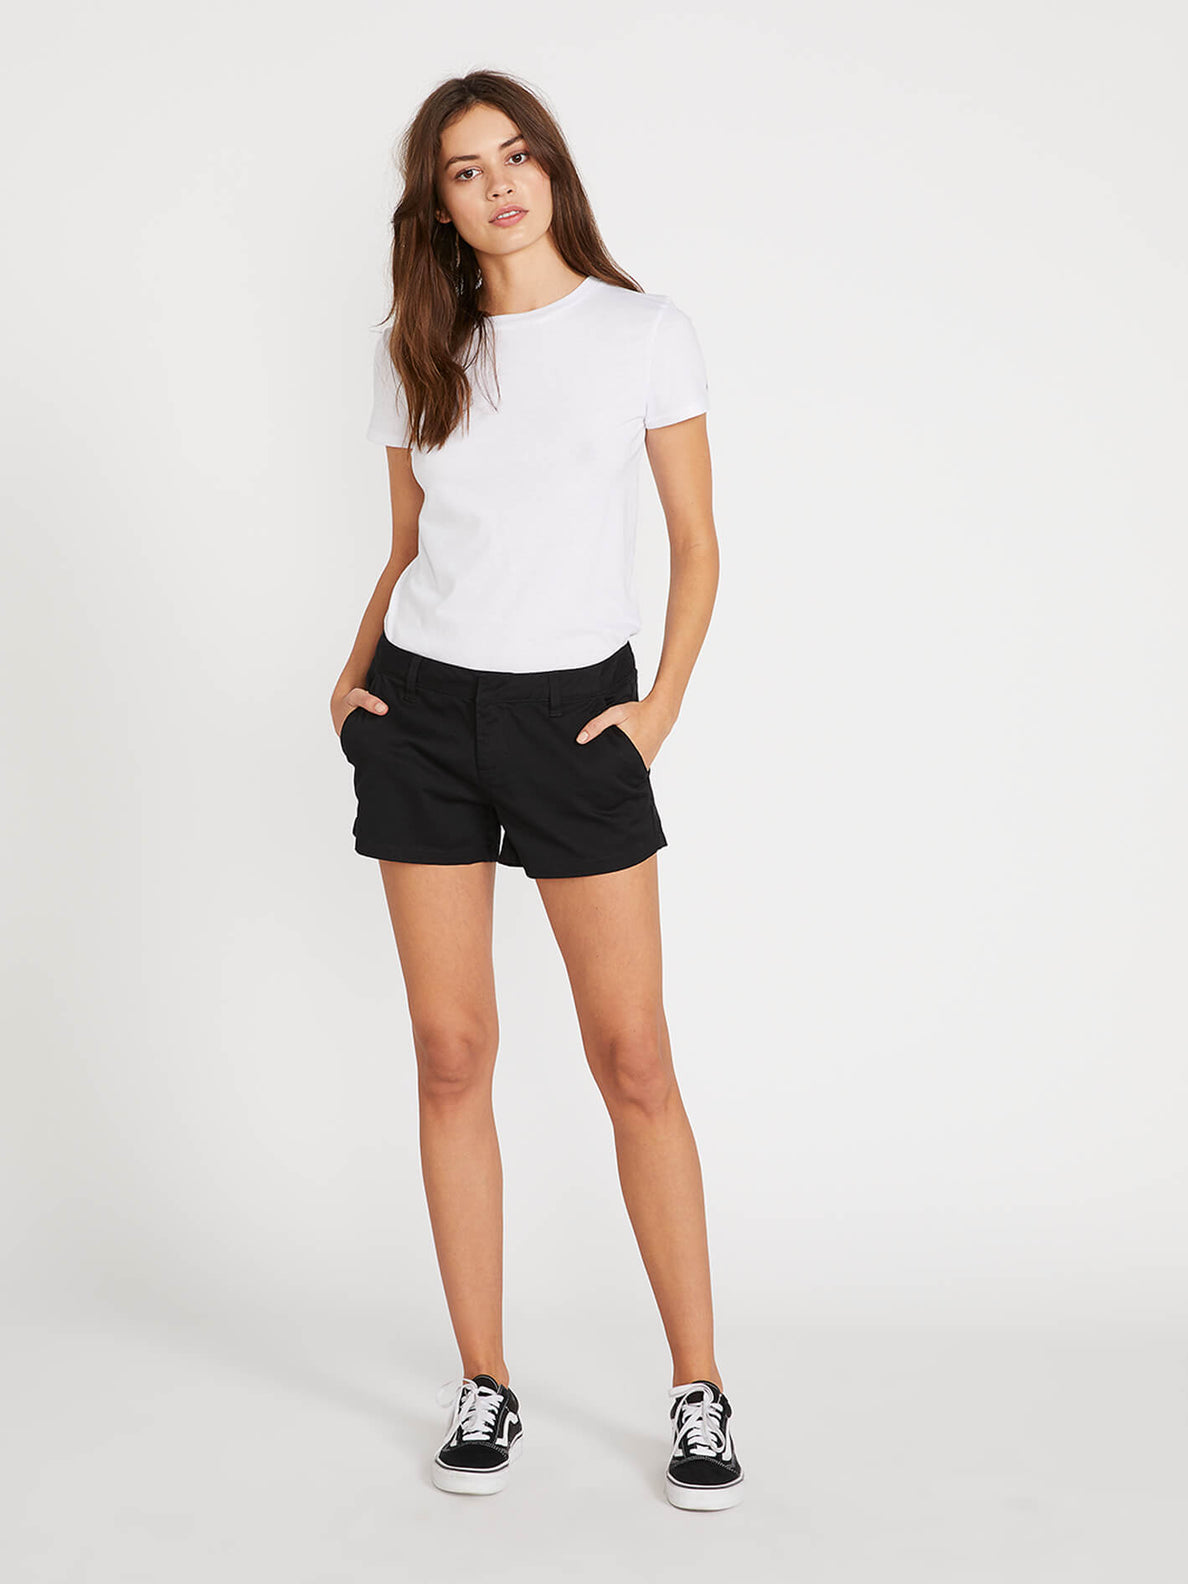 Frochickie Shorts - Black (B0911800_BLK) [2]